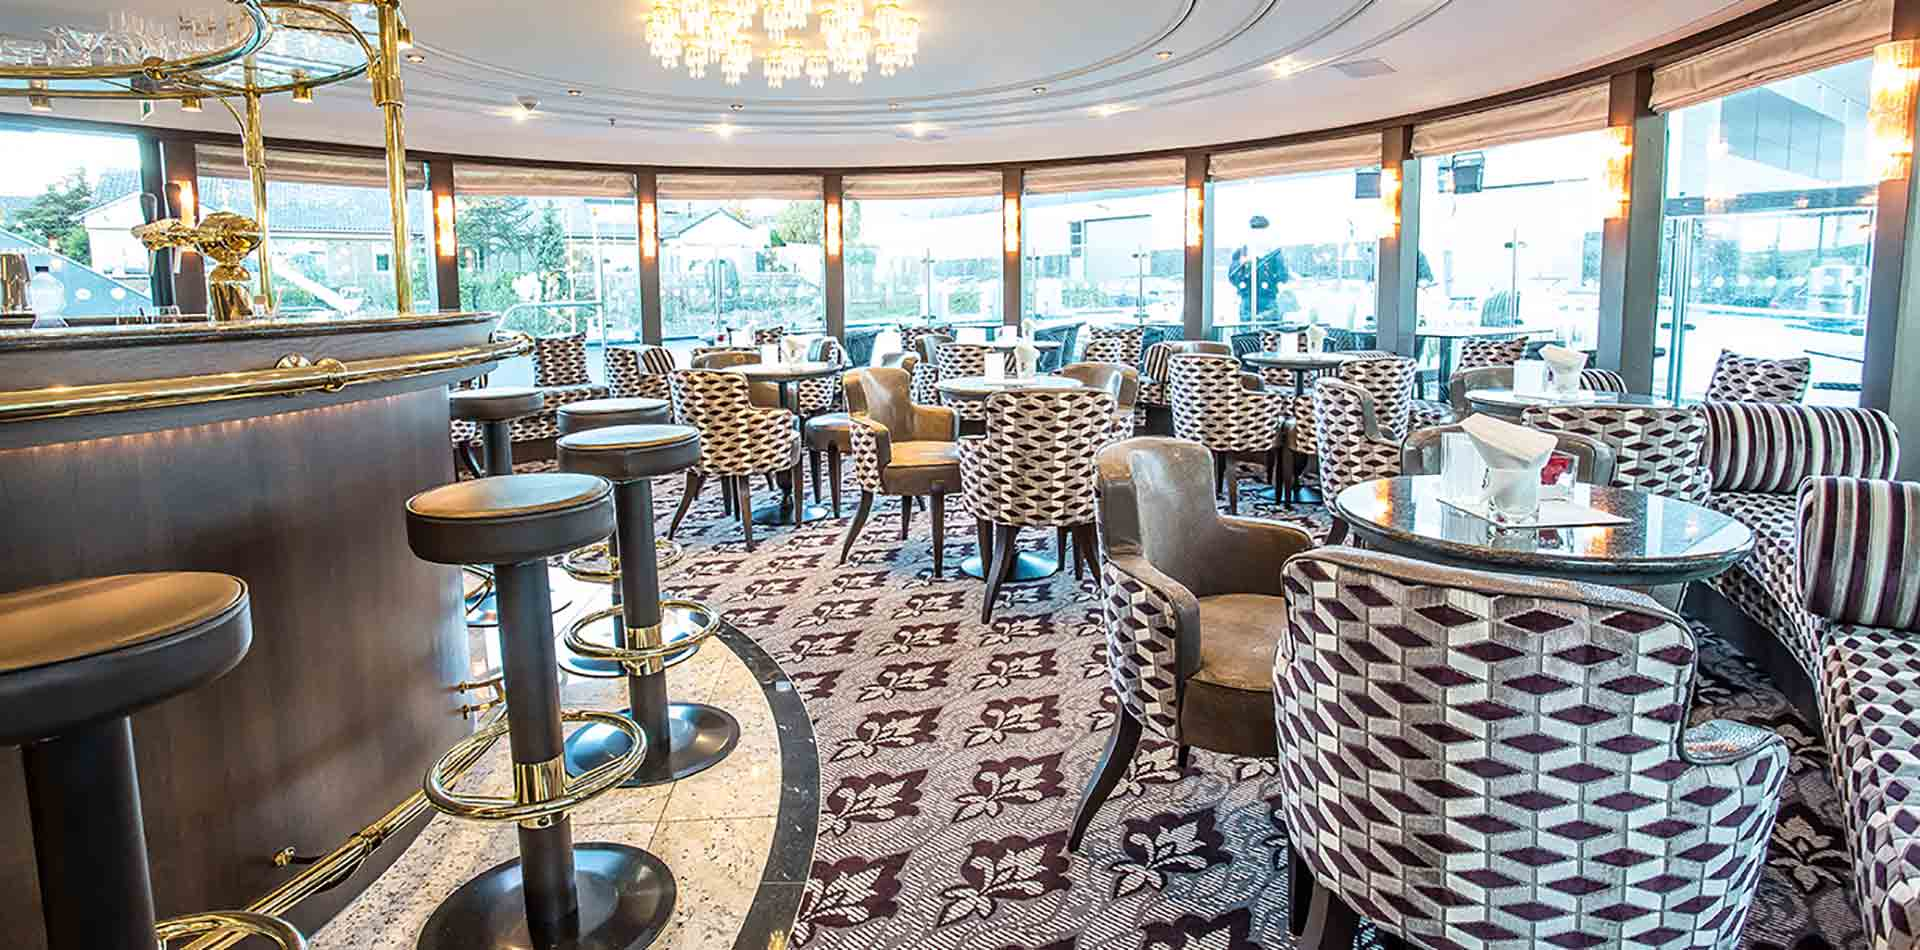 Danube River Cruise Dining Room